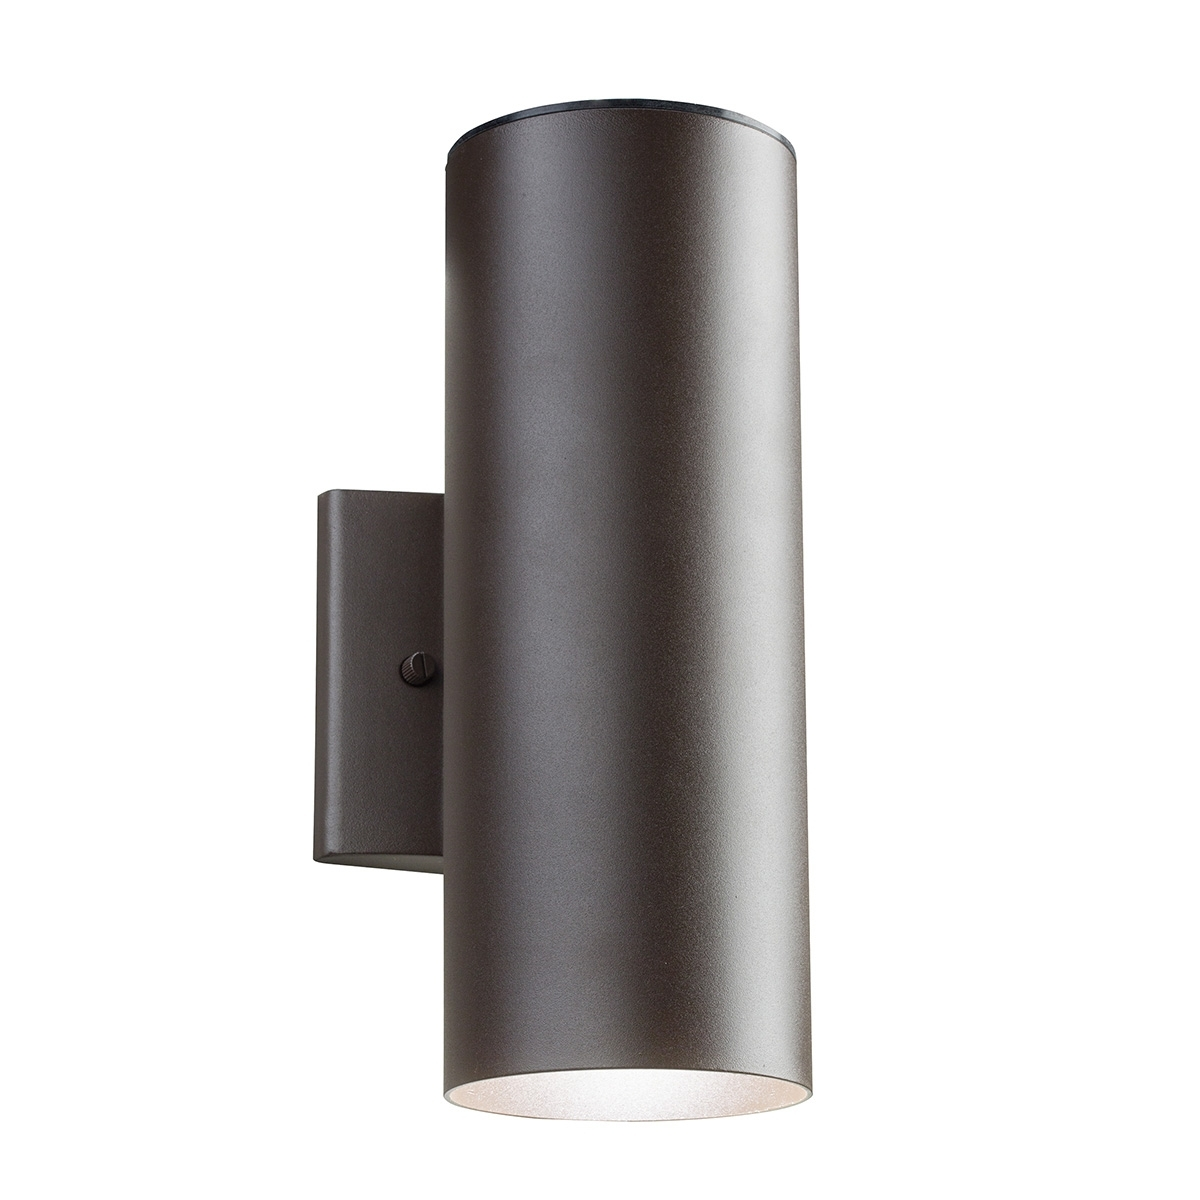 Popular Photo of Outdoor Up Down Wall Led Lights